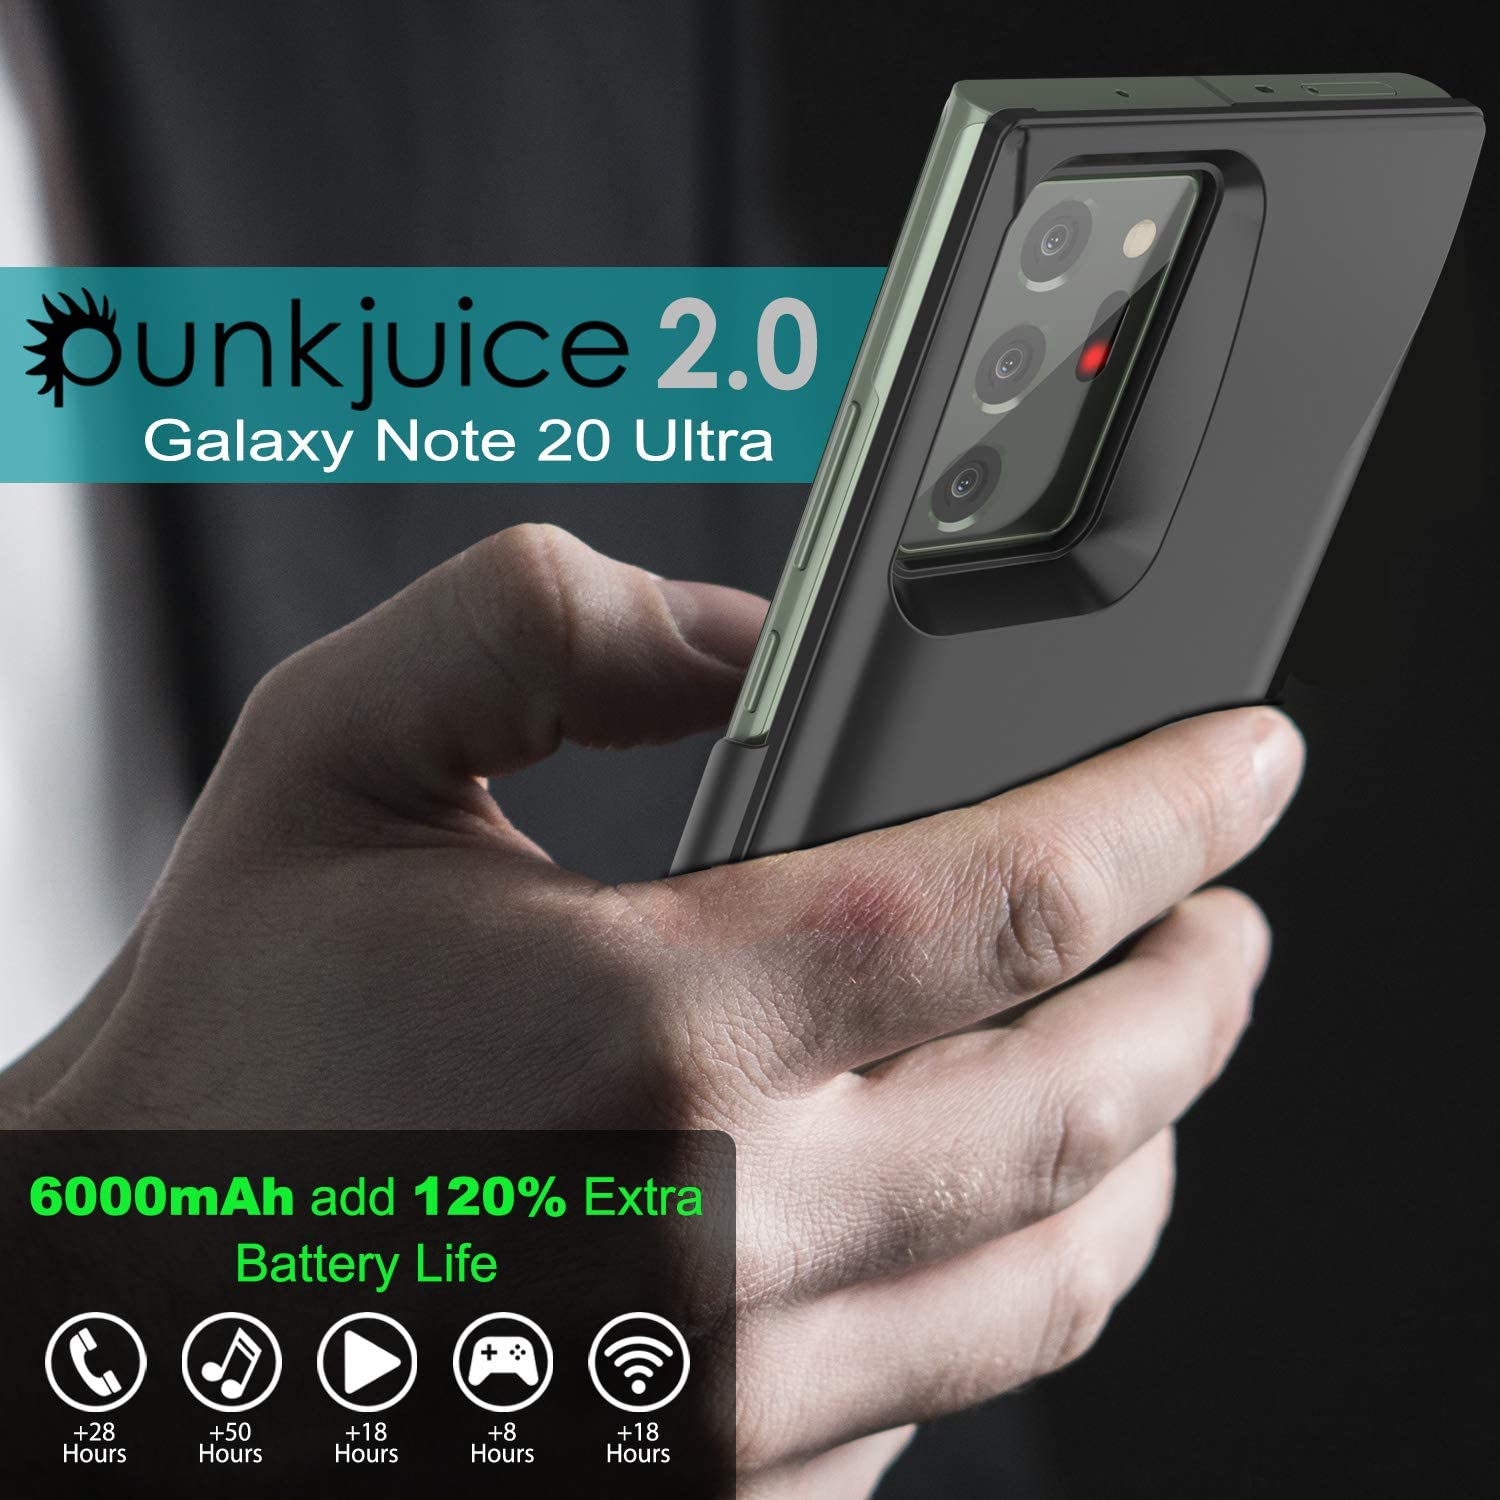 Galaxy Note 20 Ultra 6000mAH Battery Charger PunkJuice 2.0 Slim Case [Black]